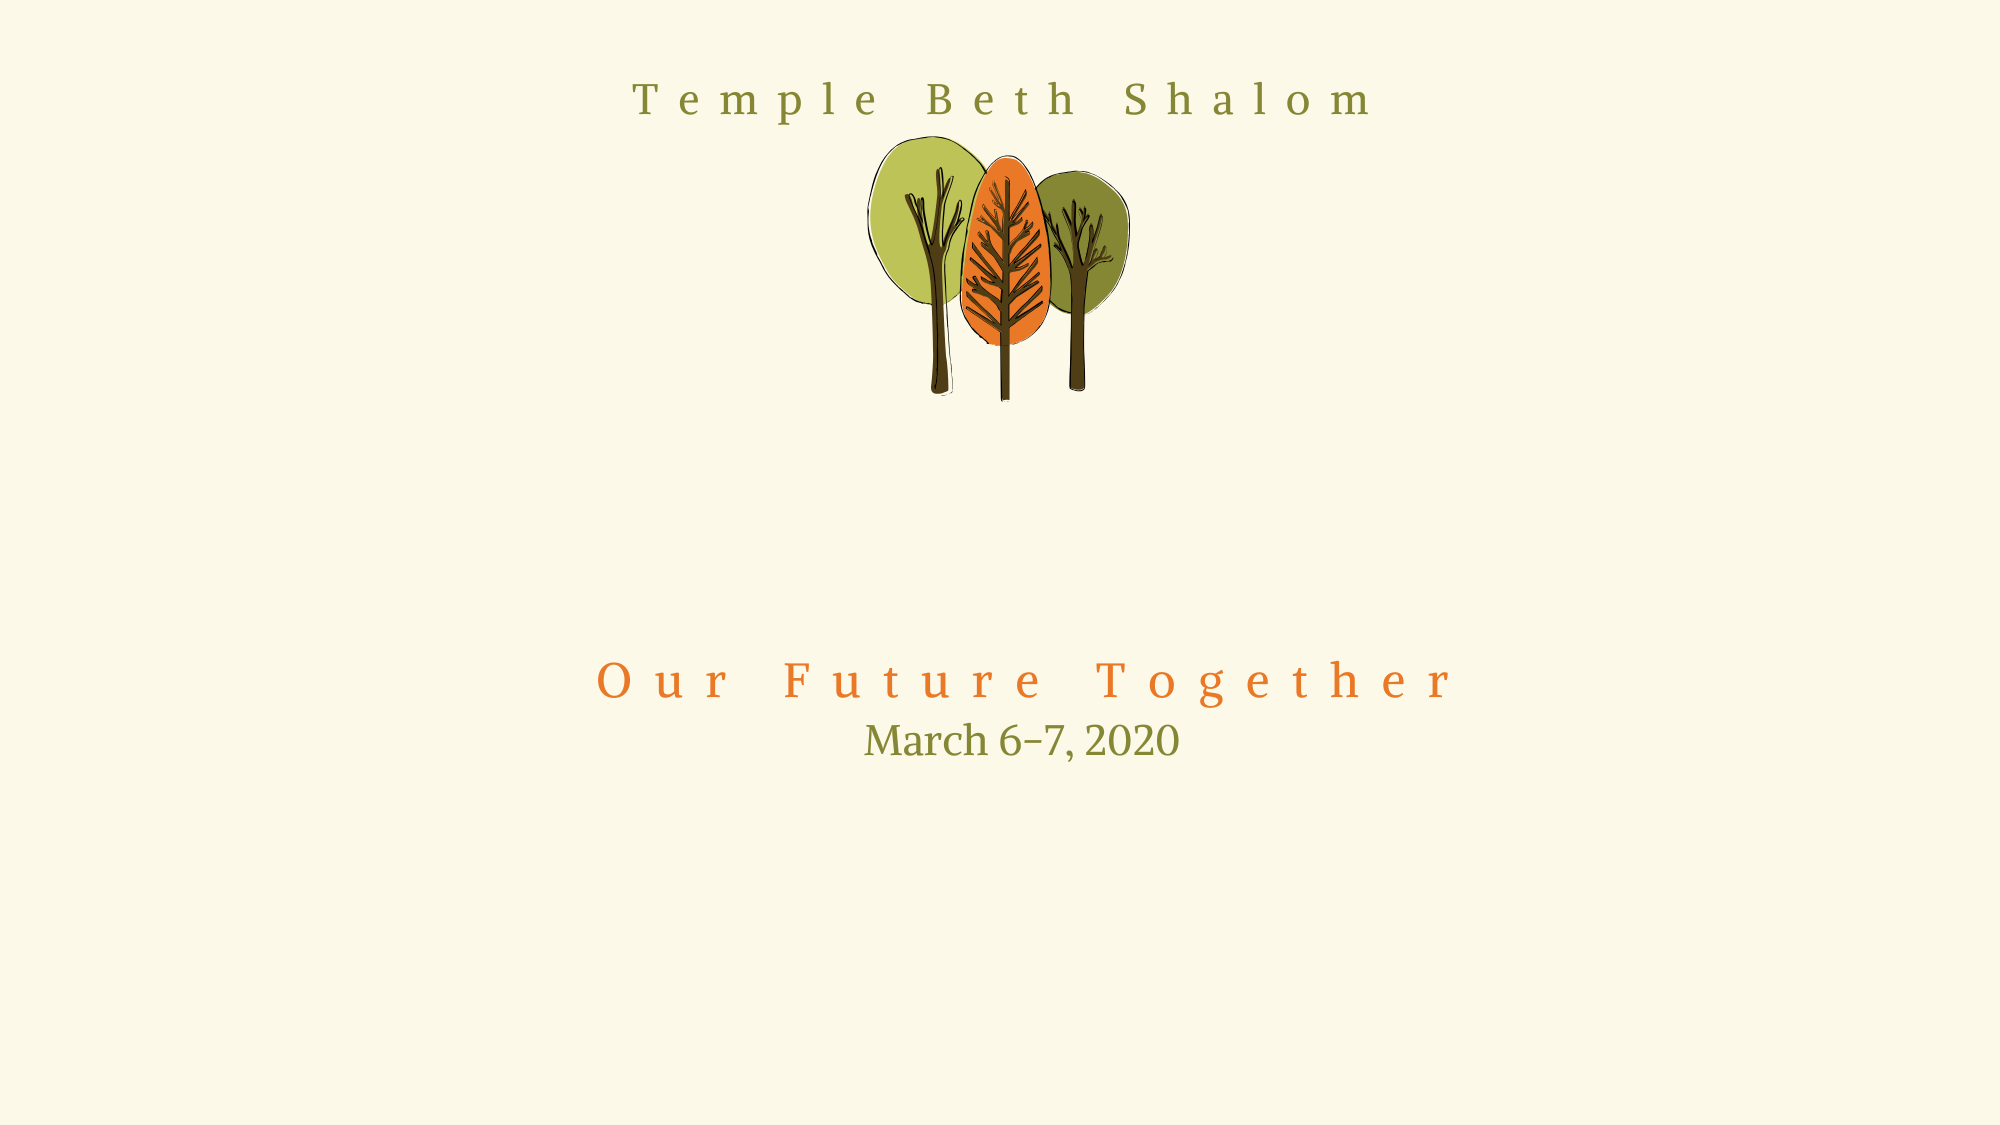 """<a href=""""https://www.bethshalomaustin.org/congregational-retreat""""                                     target=""""_blank"""">                                                                 <span class=""""slider_title"""">                                     Congregational Retreat                                </span>                                                                 </a>                                                                                                                                                                                       <span class=""""slider_description"""">All members welcome!</span>                                                                                     <a href=""""https://www.bethshalomaustin.org/congregational-retreat"""" class=""""slider_link""""                             target=""""_blank"""">                             Sign up by March 1                            </a>"""